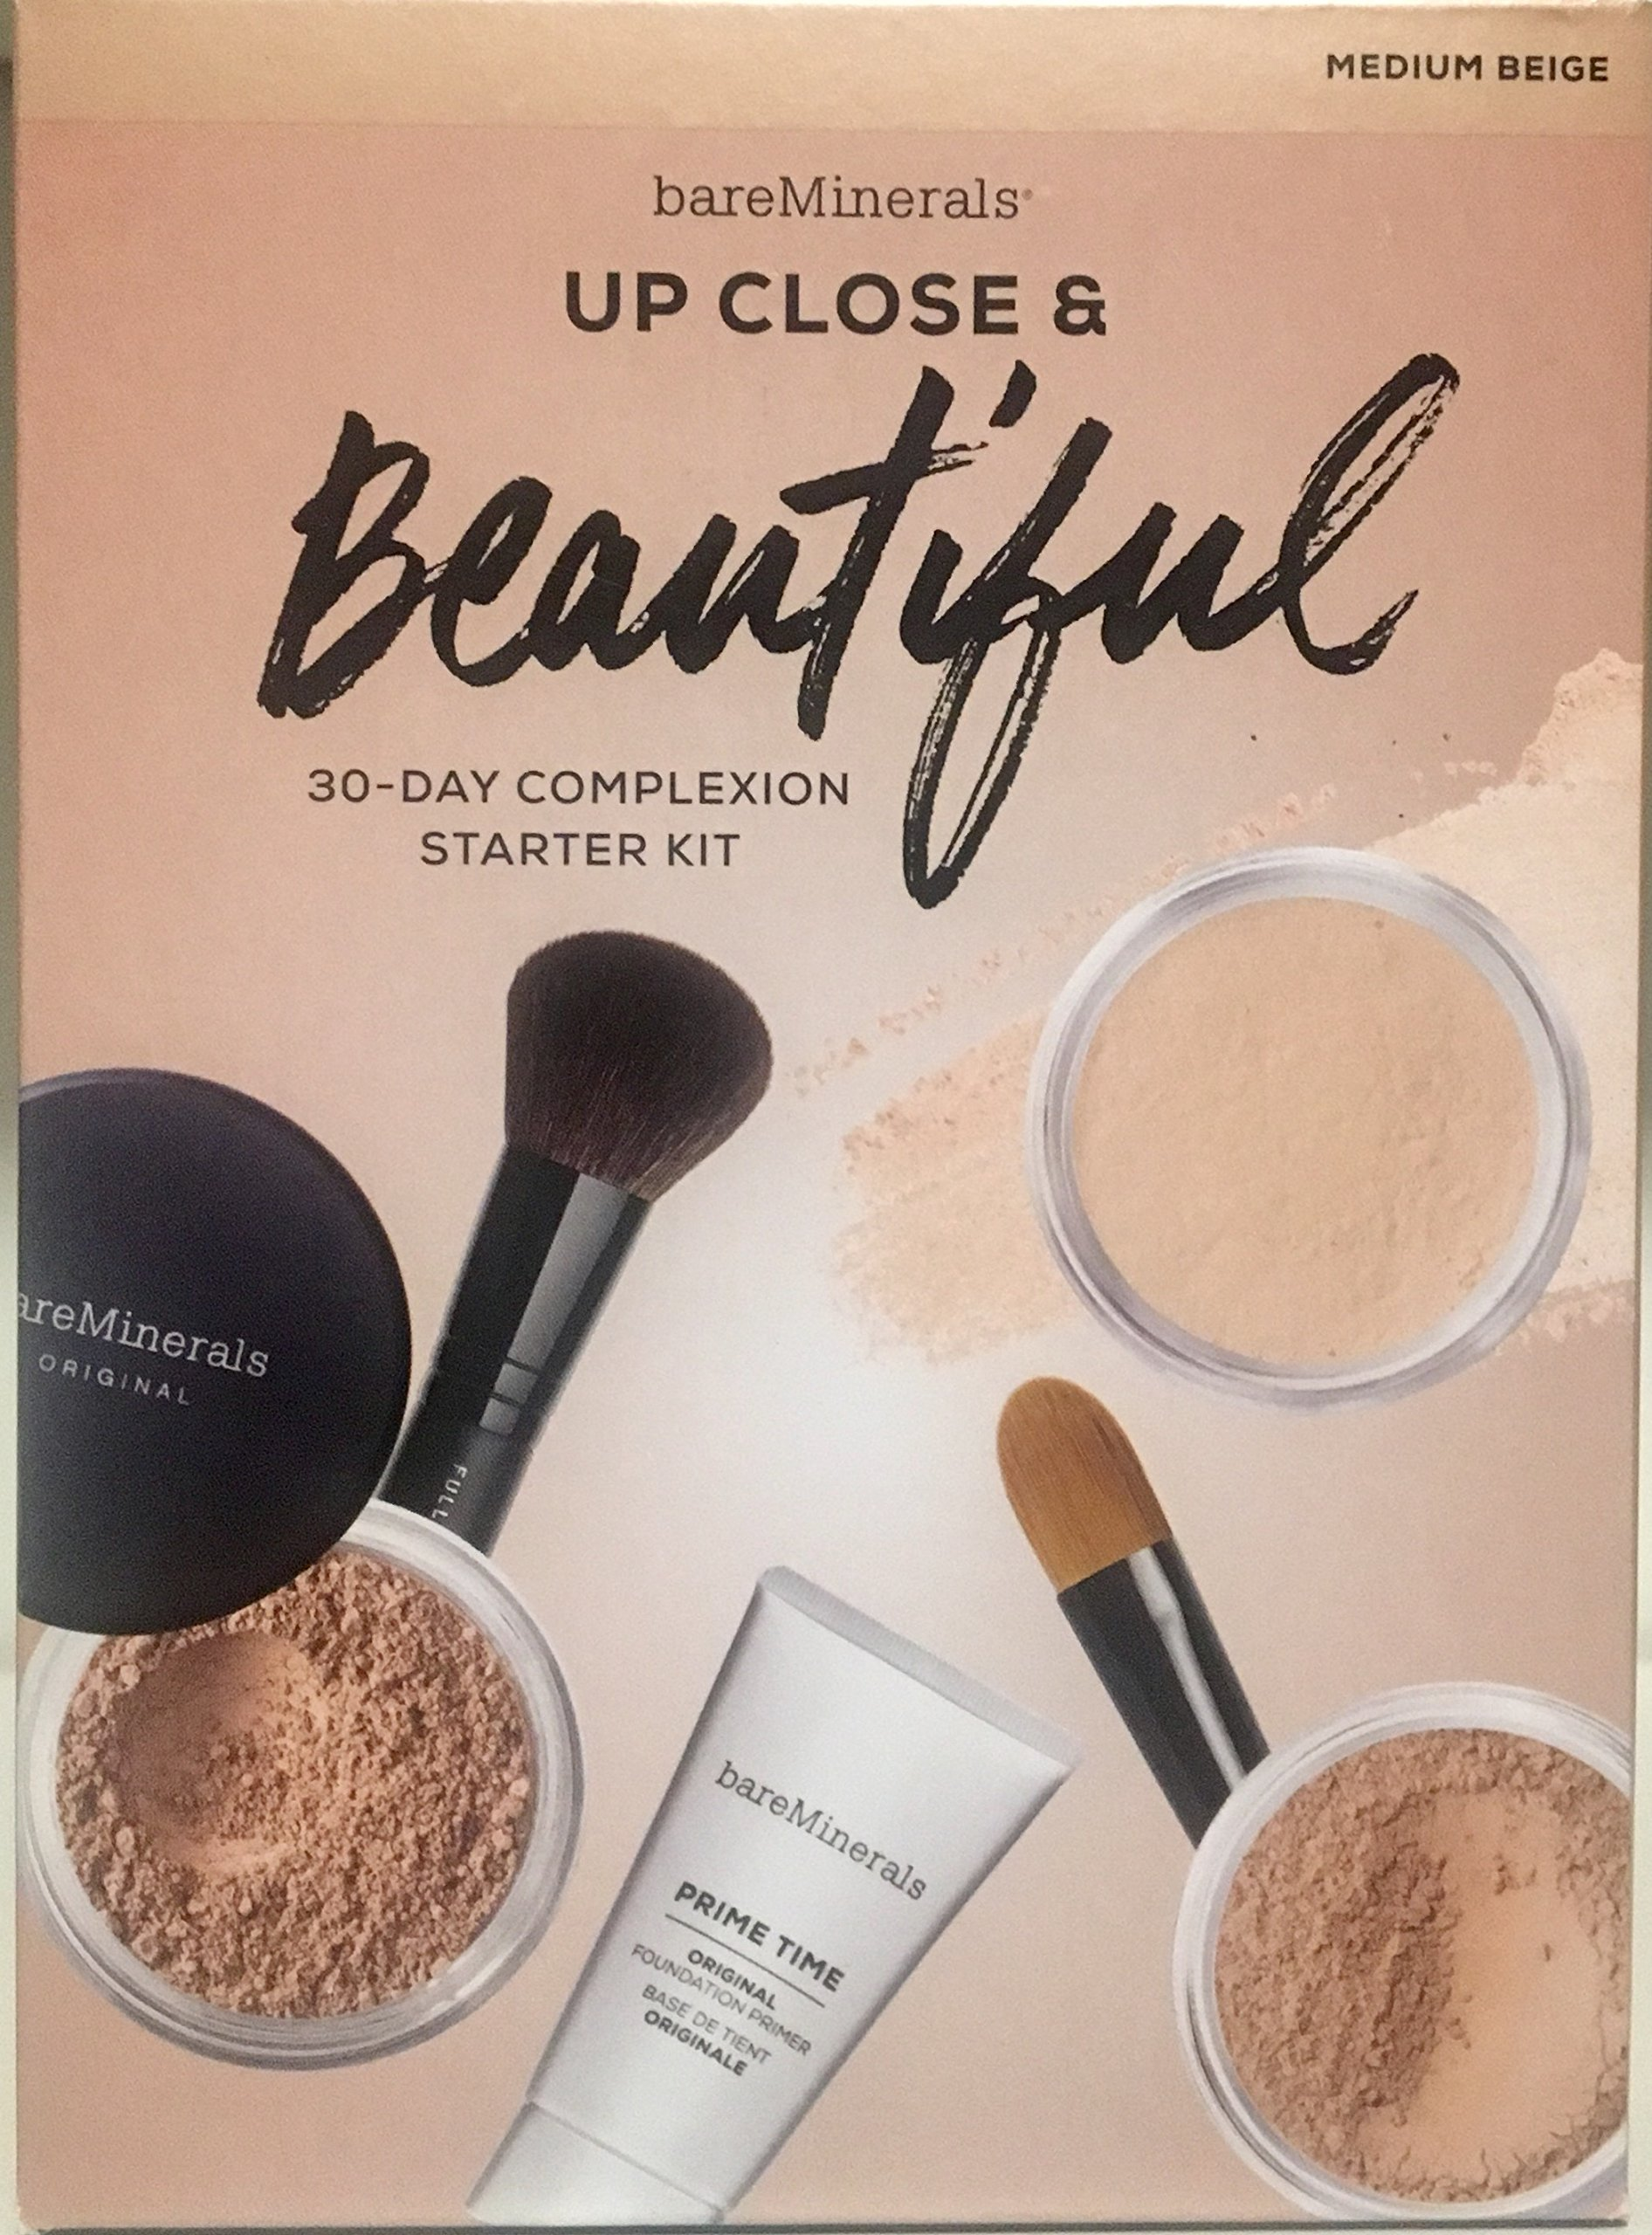 bareMinerals Up Close & Beautiful 30-Day Complexion Starter Kit - Medium Beige